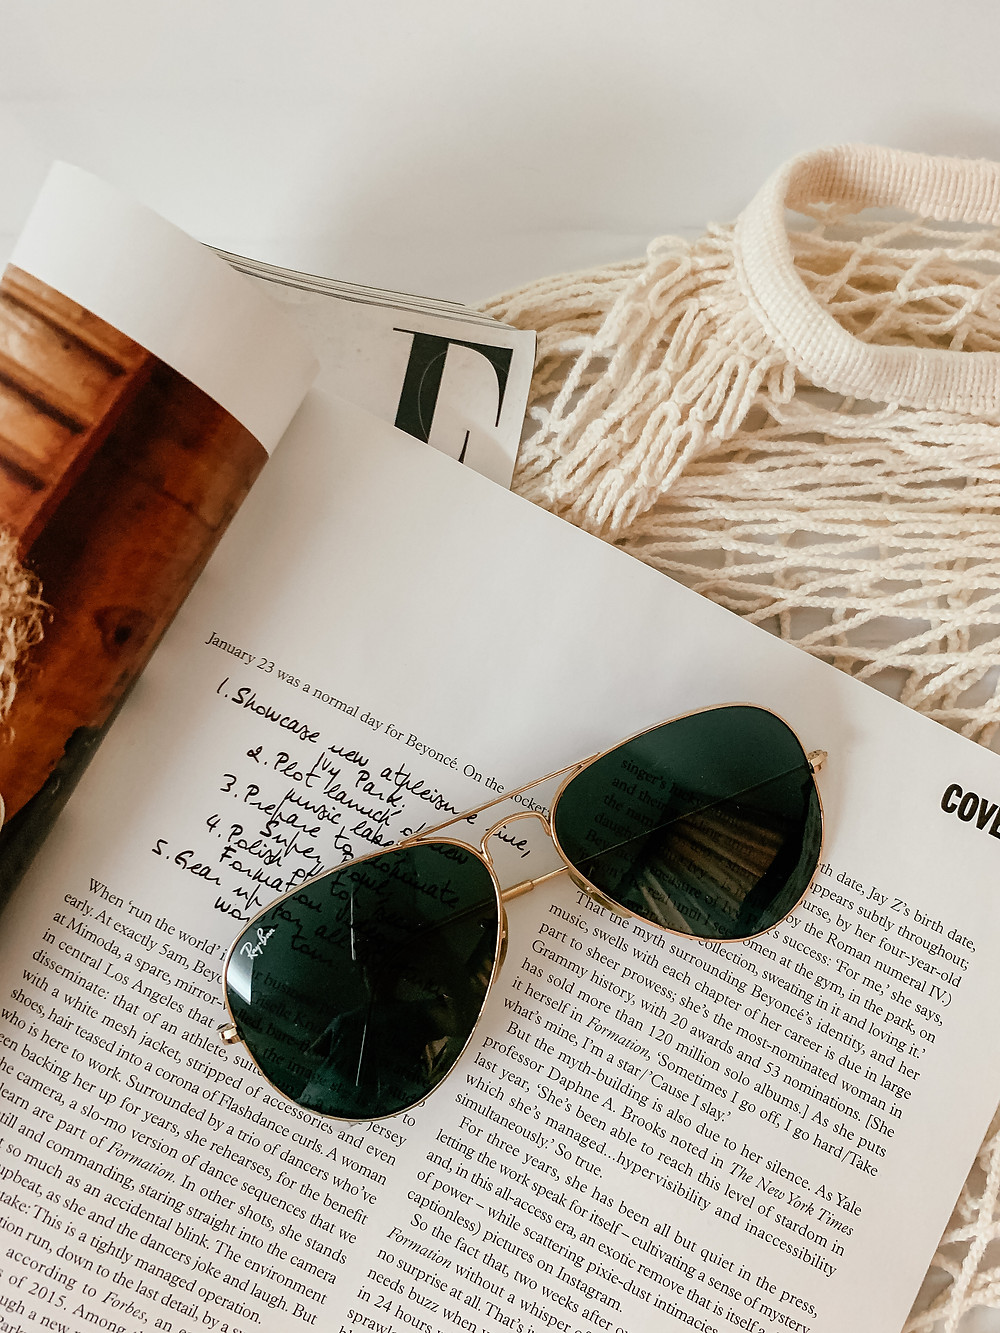 RAY-BAN Aviator | TOP 10 Sunglasses We Recommend | Accessories | A Style Alike